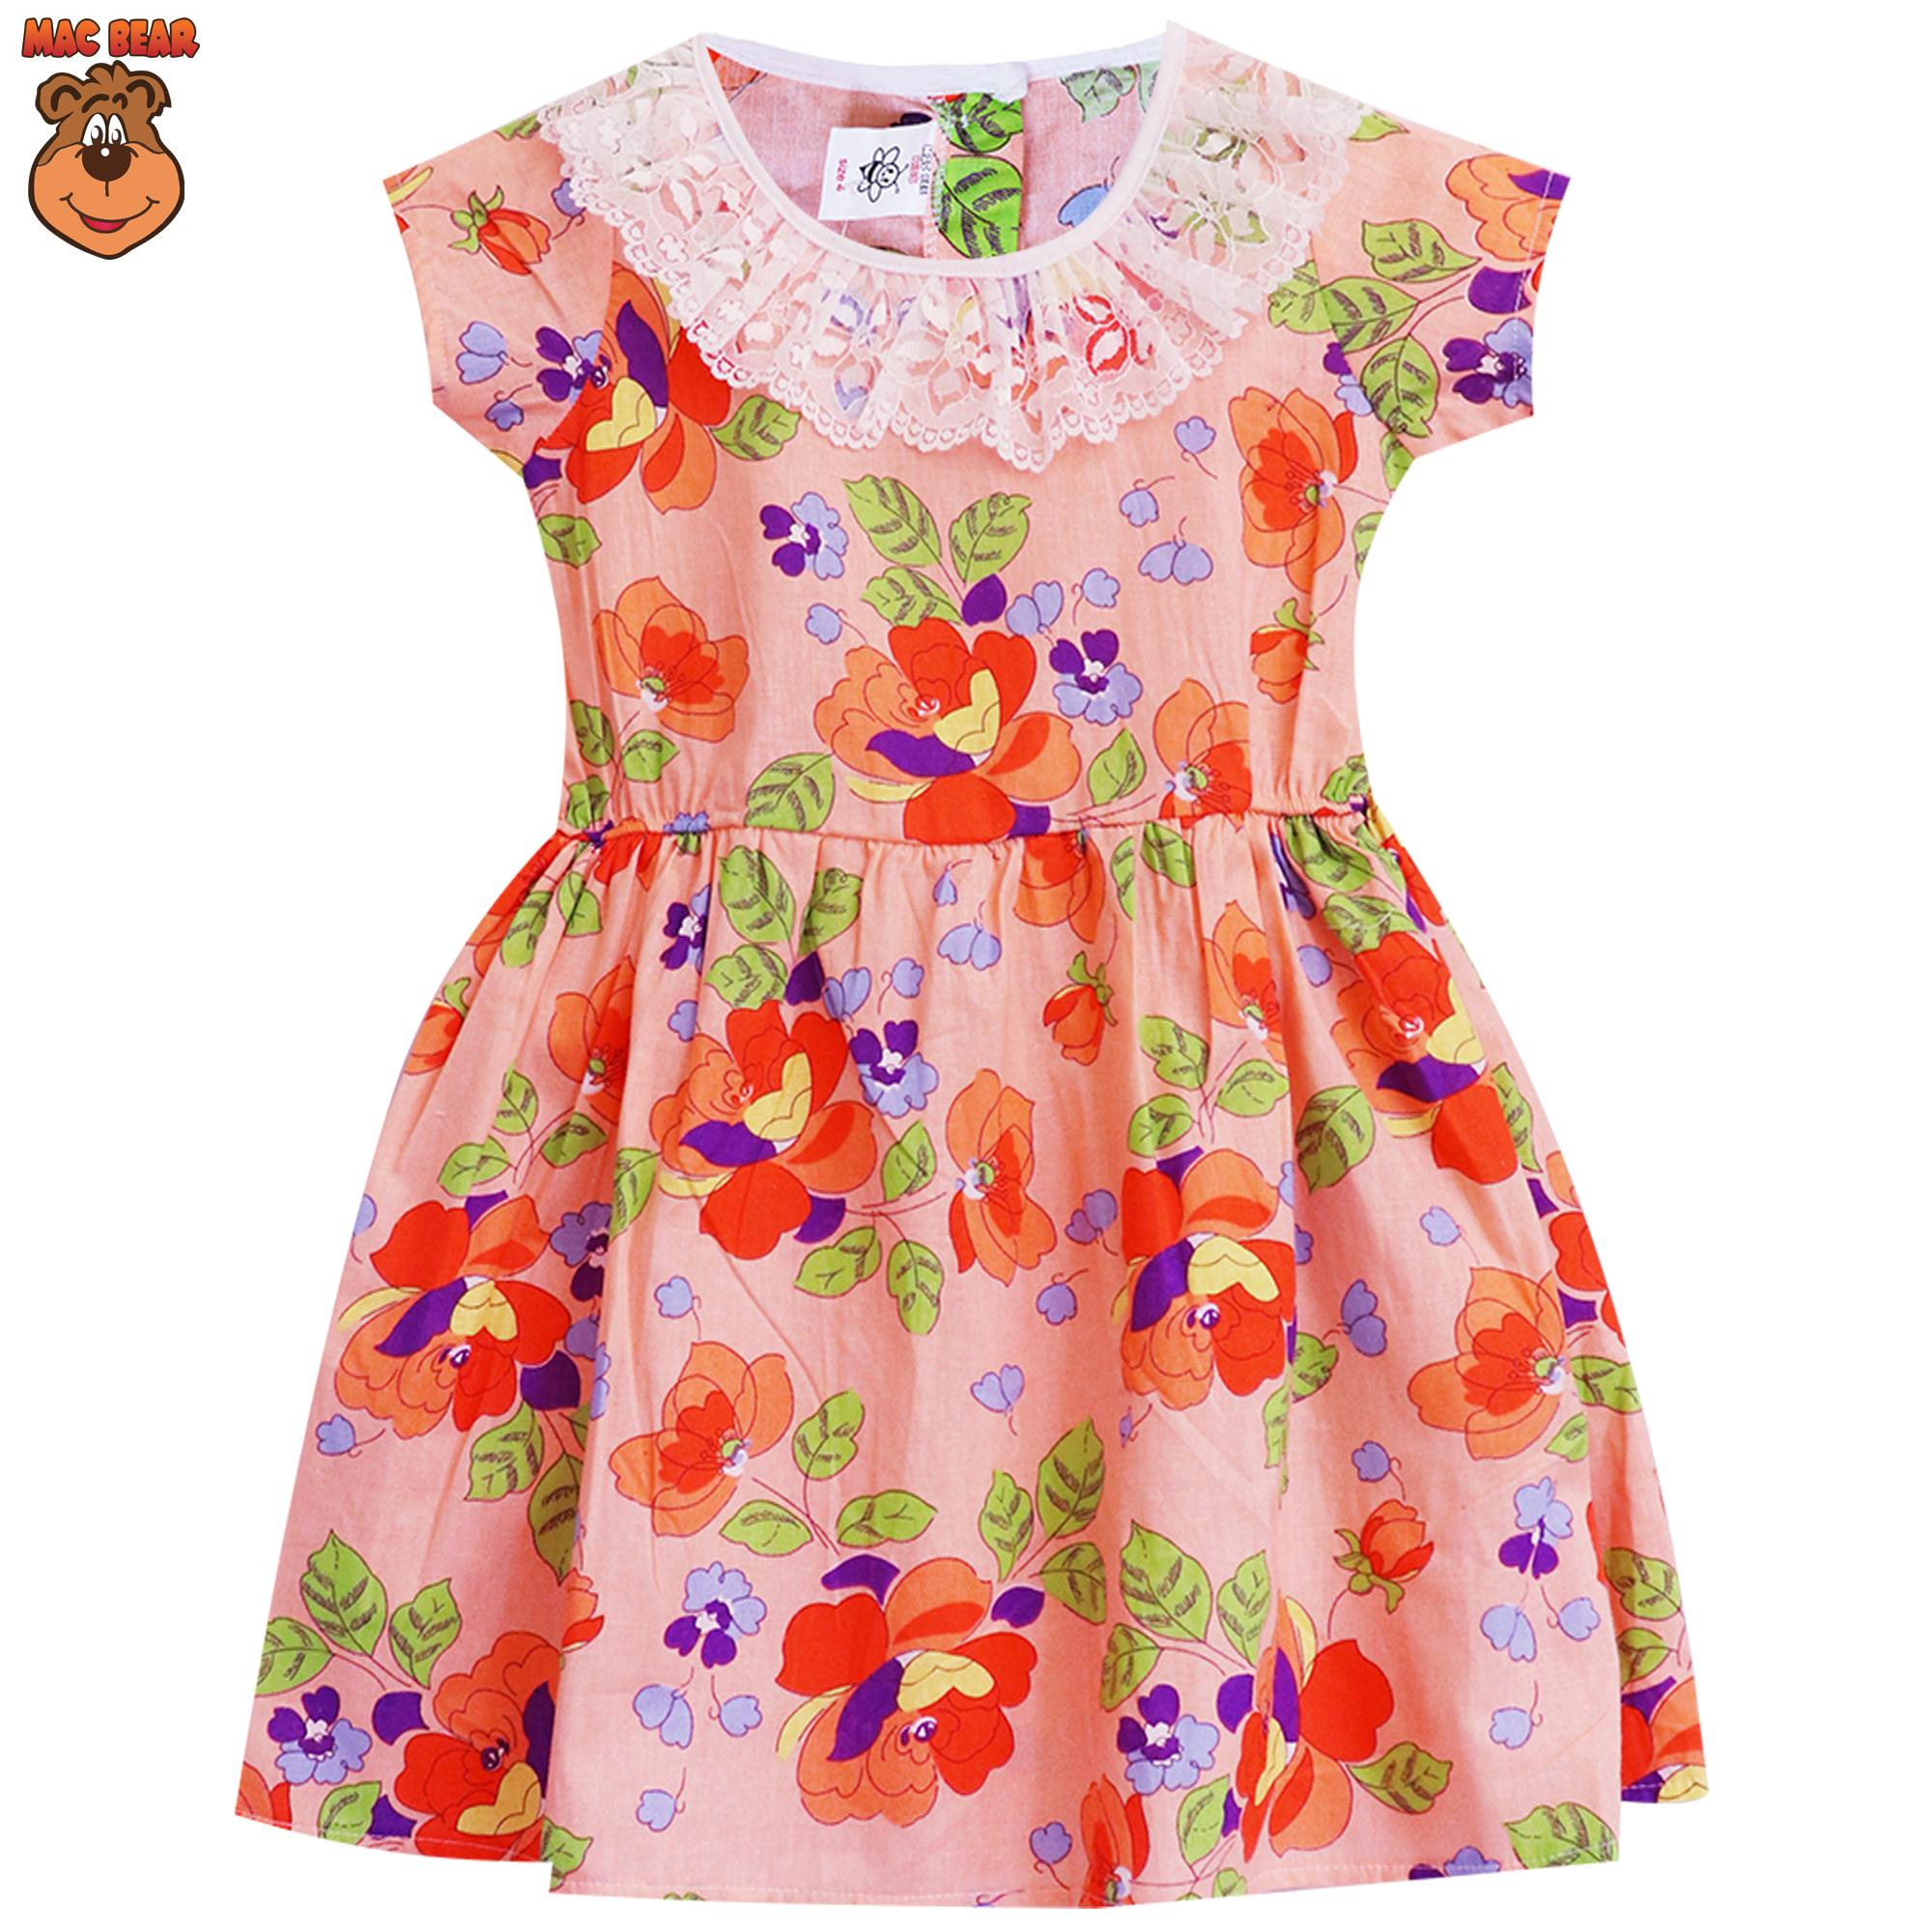 Buy Sell Cheapest Macbee Kids Baju Best Quality Product Deals Anak Setelan Butterflies And Friends Dress Cosmos Flowers